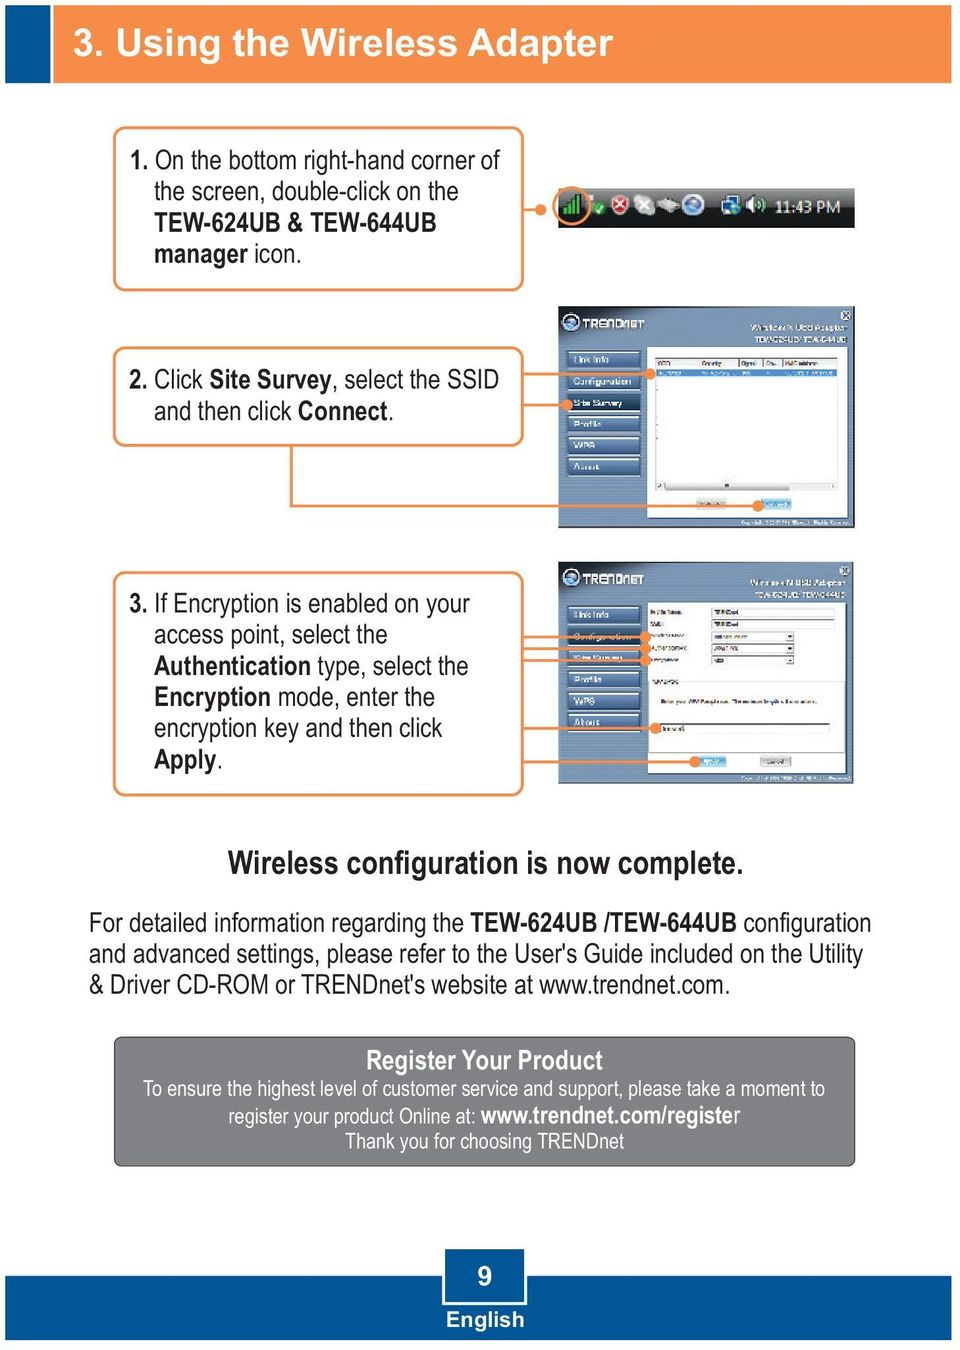 For detailed information regarding the TEW-624UB /TEW-644UB configuration and advanced settings, please refer to the User's Guide included on the Utility & Driver CD-ROM or TRENDnet's website at www.